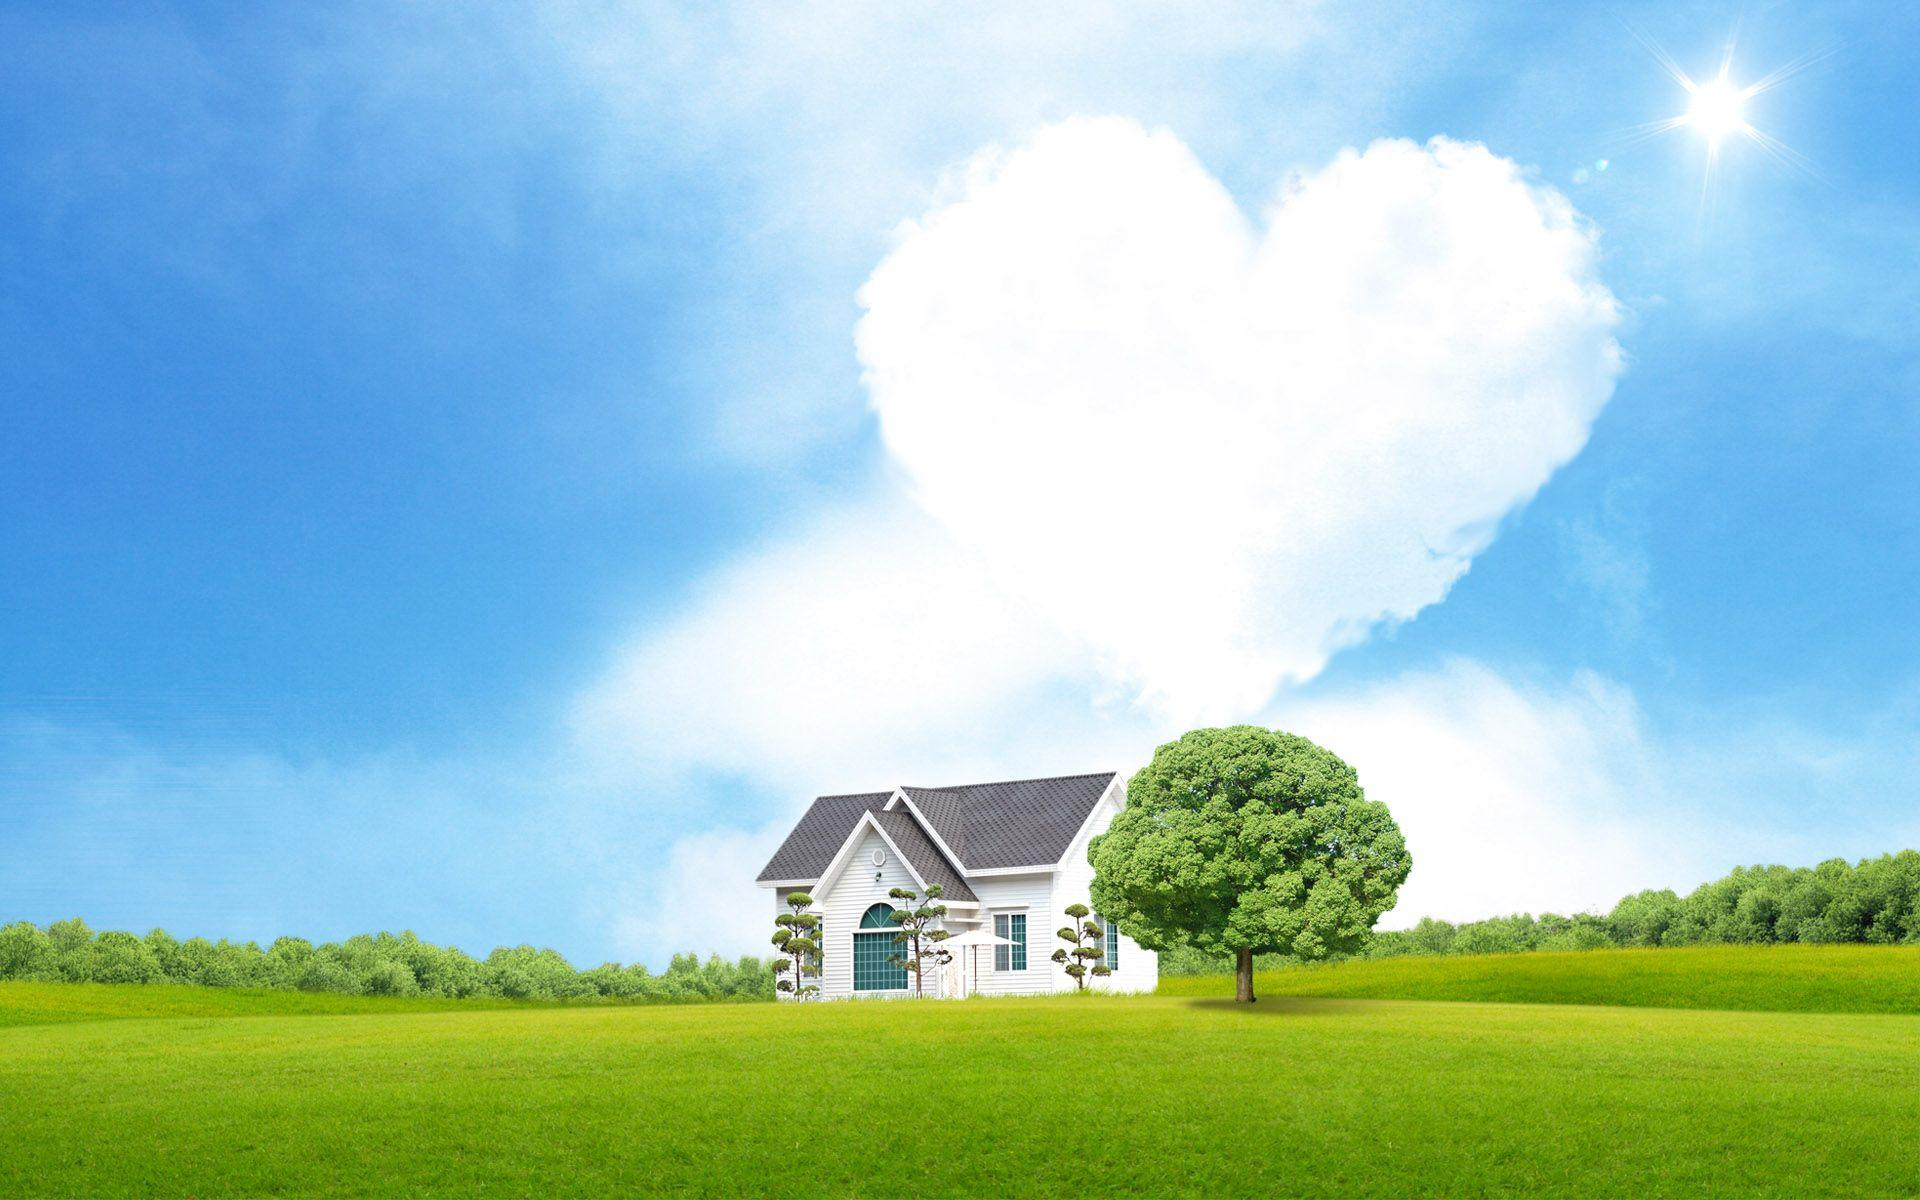 Dream House Wallpapers - Full HD wallpaper search